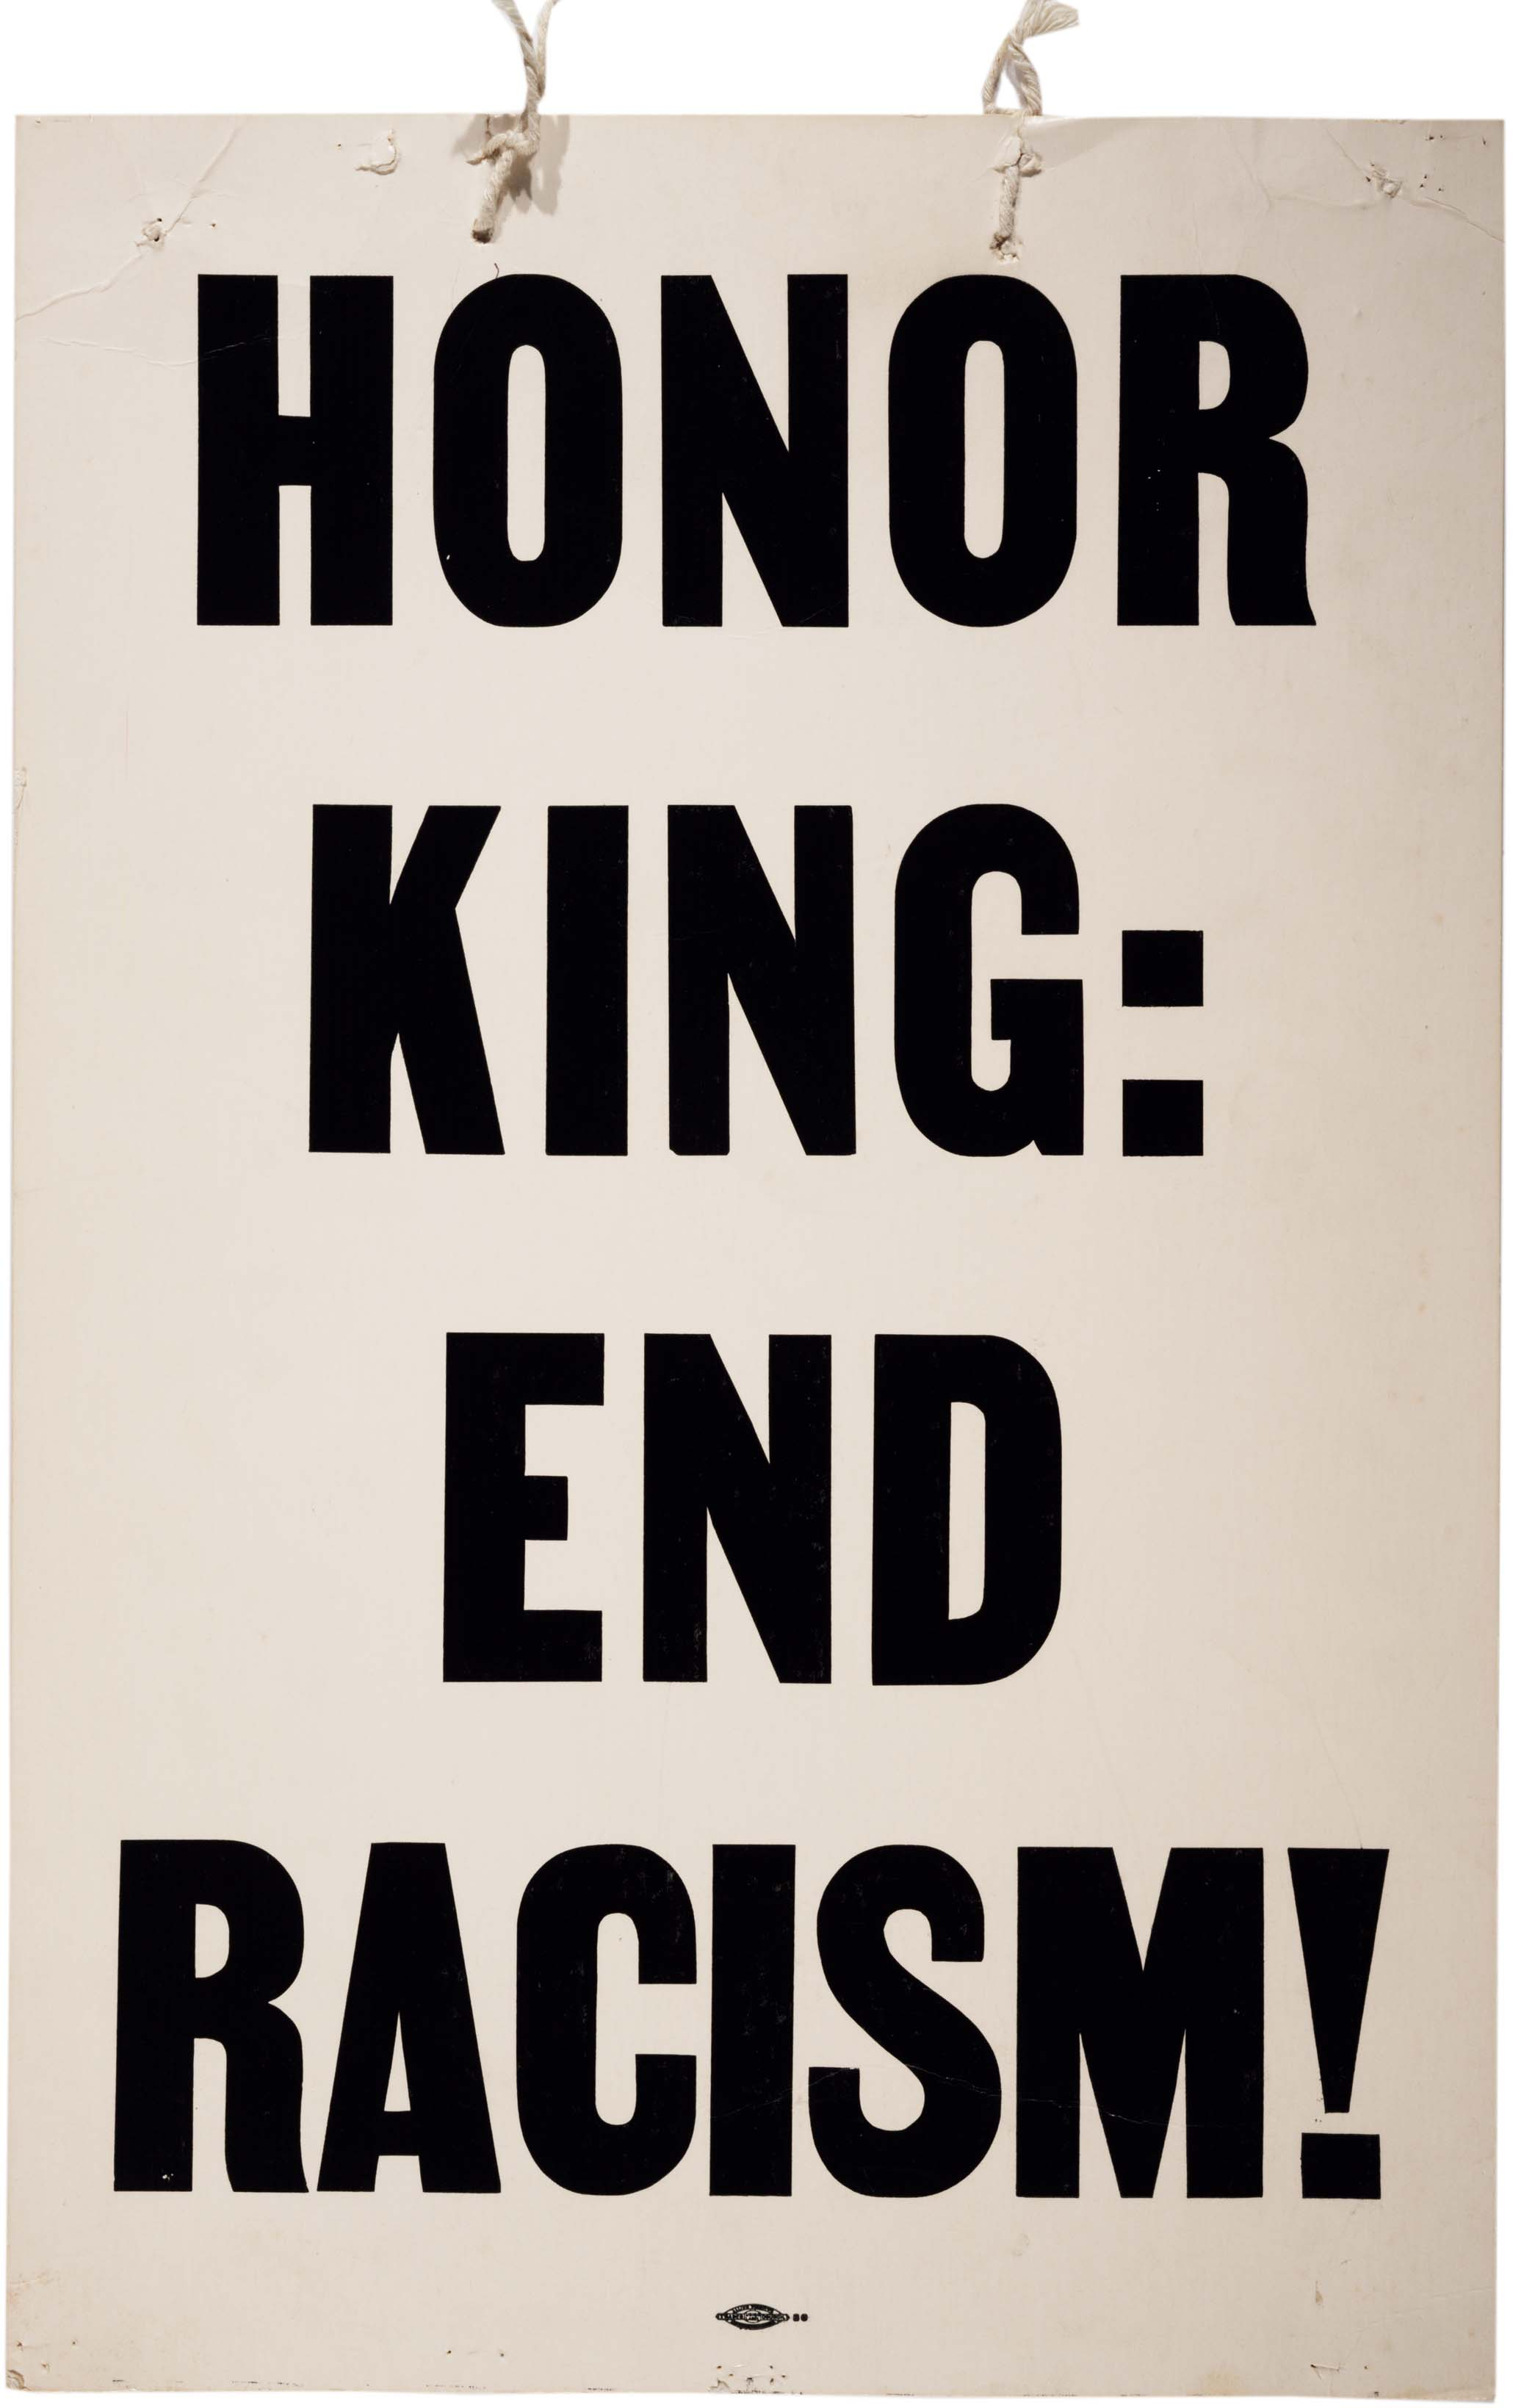 Honor King: End Racism! broadside, April 8, 1968. (Gilder Lehrman Collection)